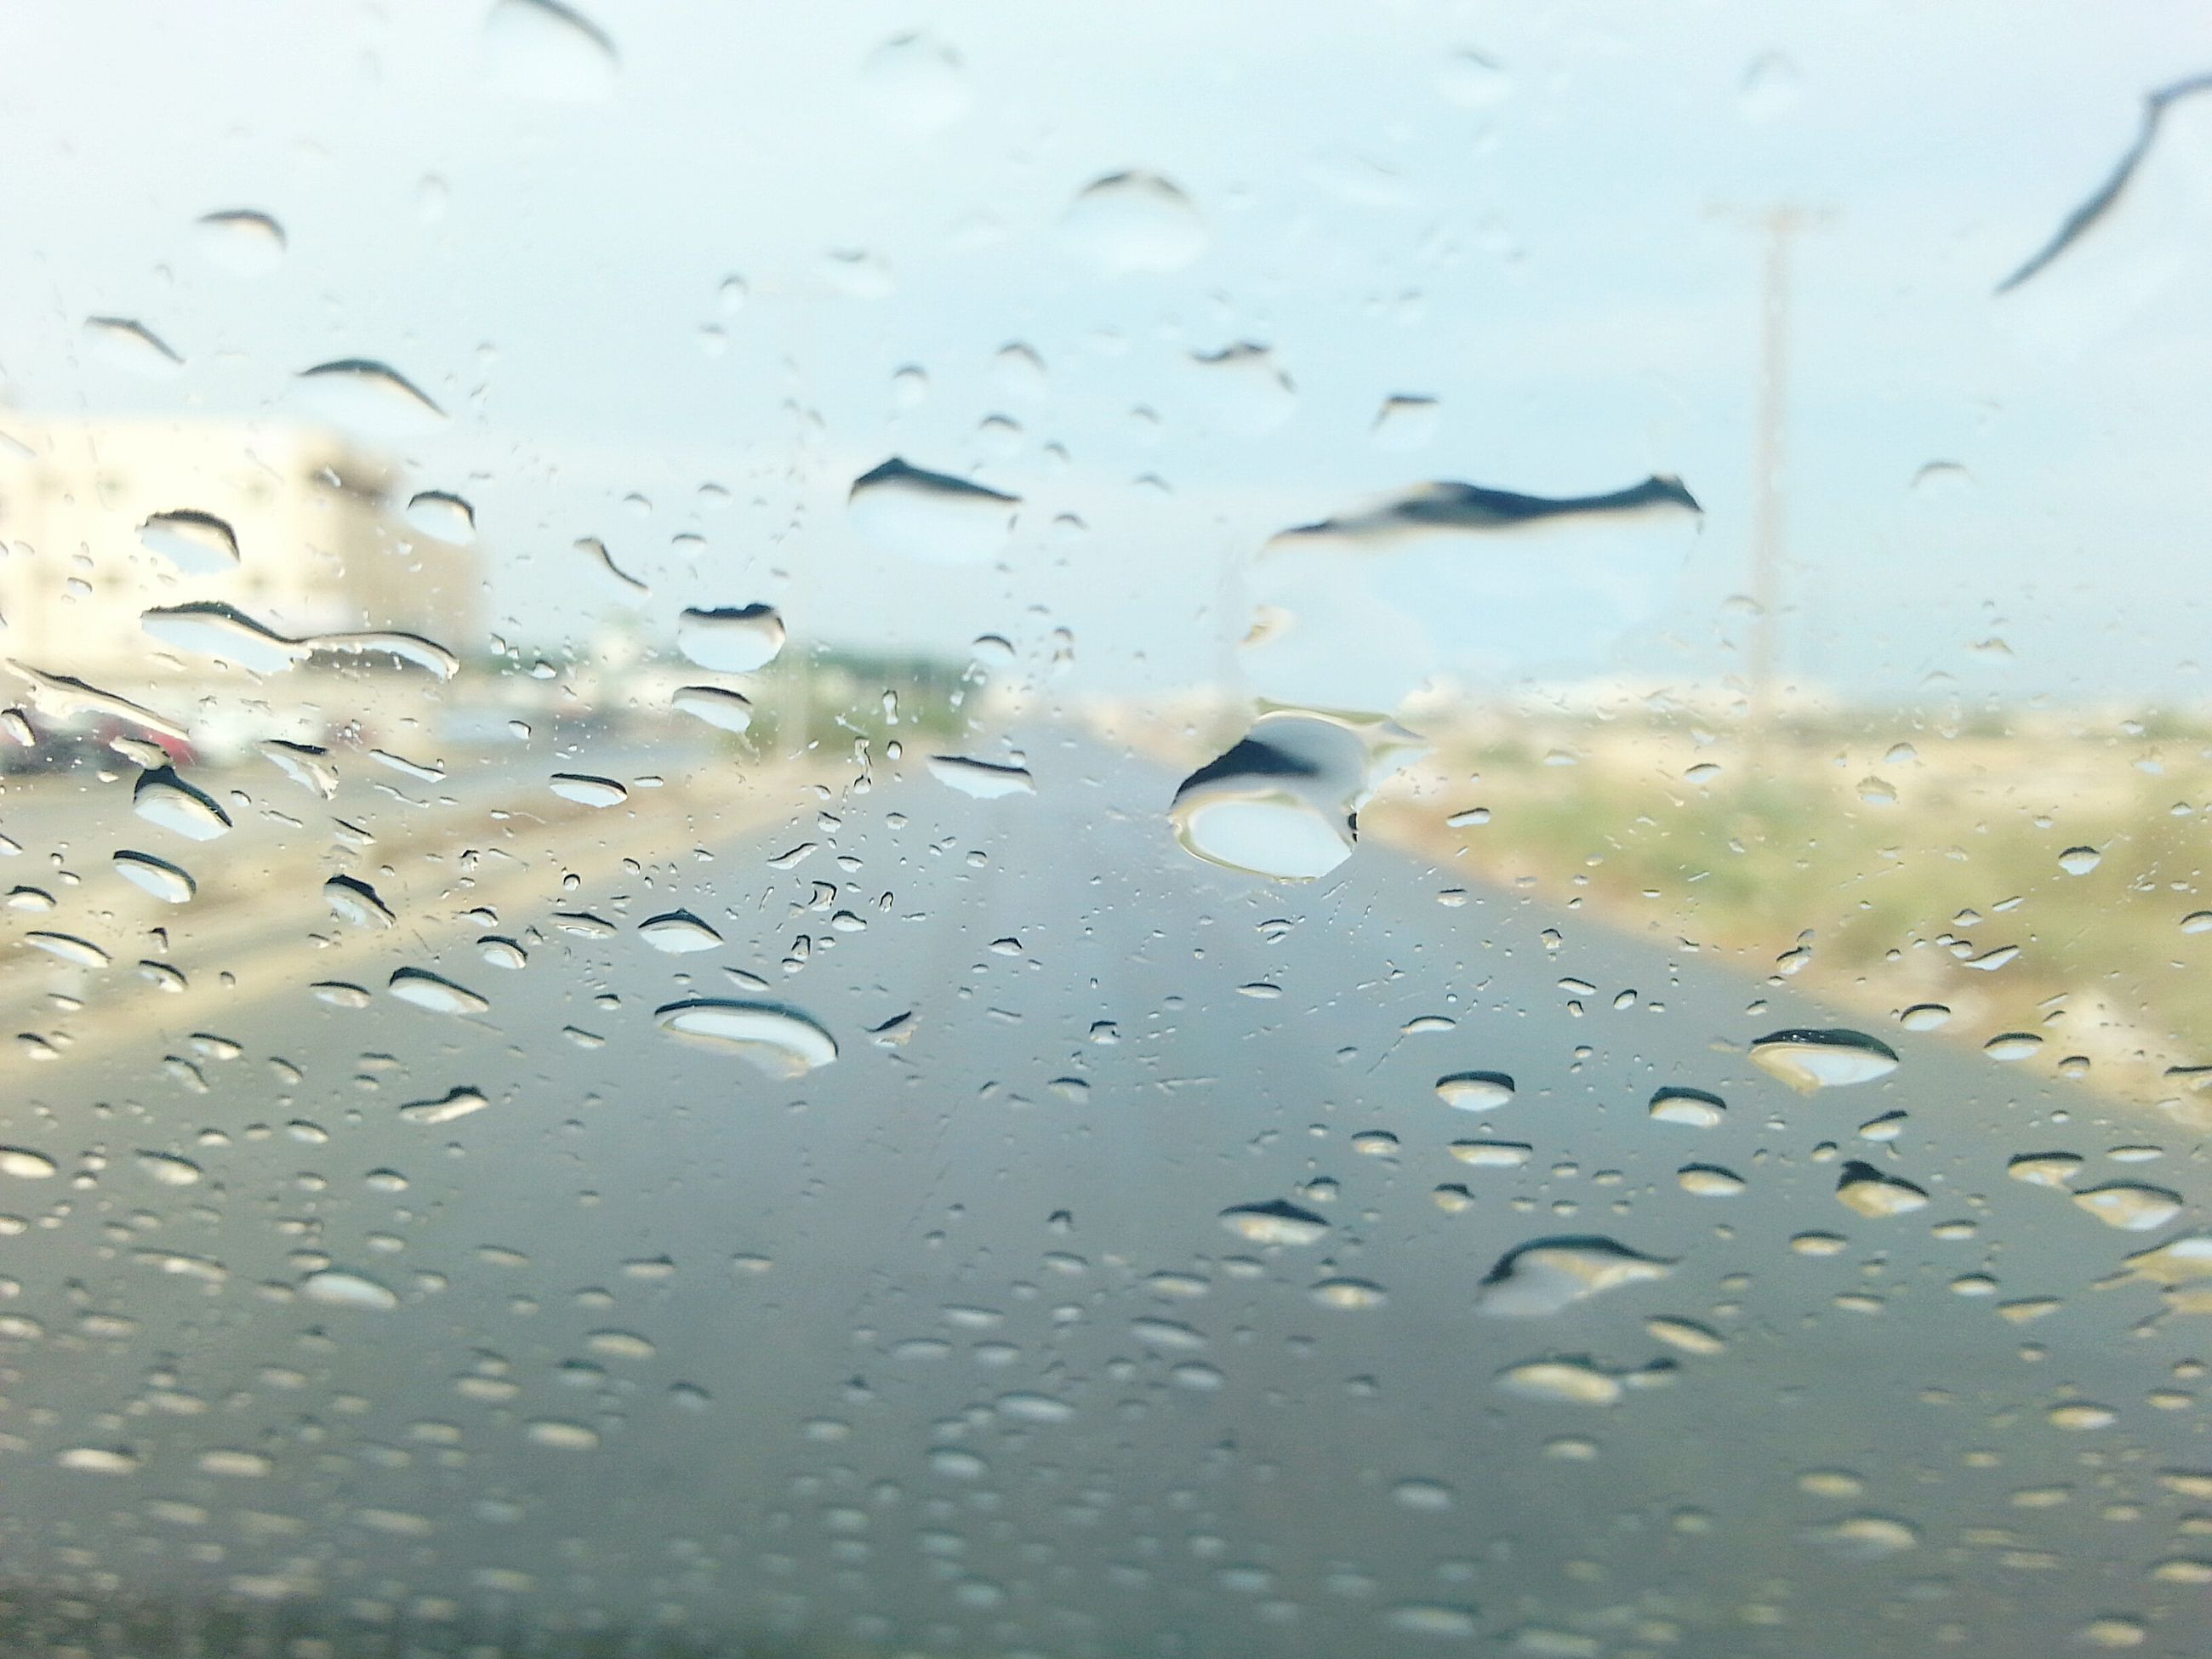 drop, wet, window, rain, indoors, water, transparent, glass - material, raindrop, weather, full frame, backgrounds, season, glass, close-up, focus on foreground, sky, built structure, architecture, monsoon